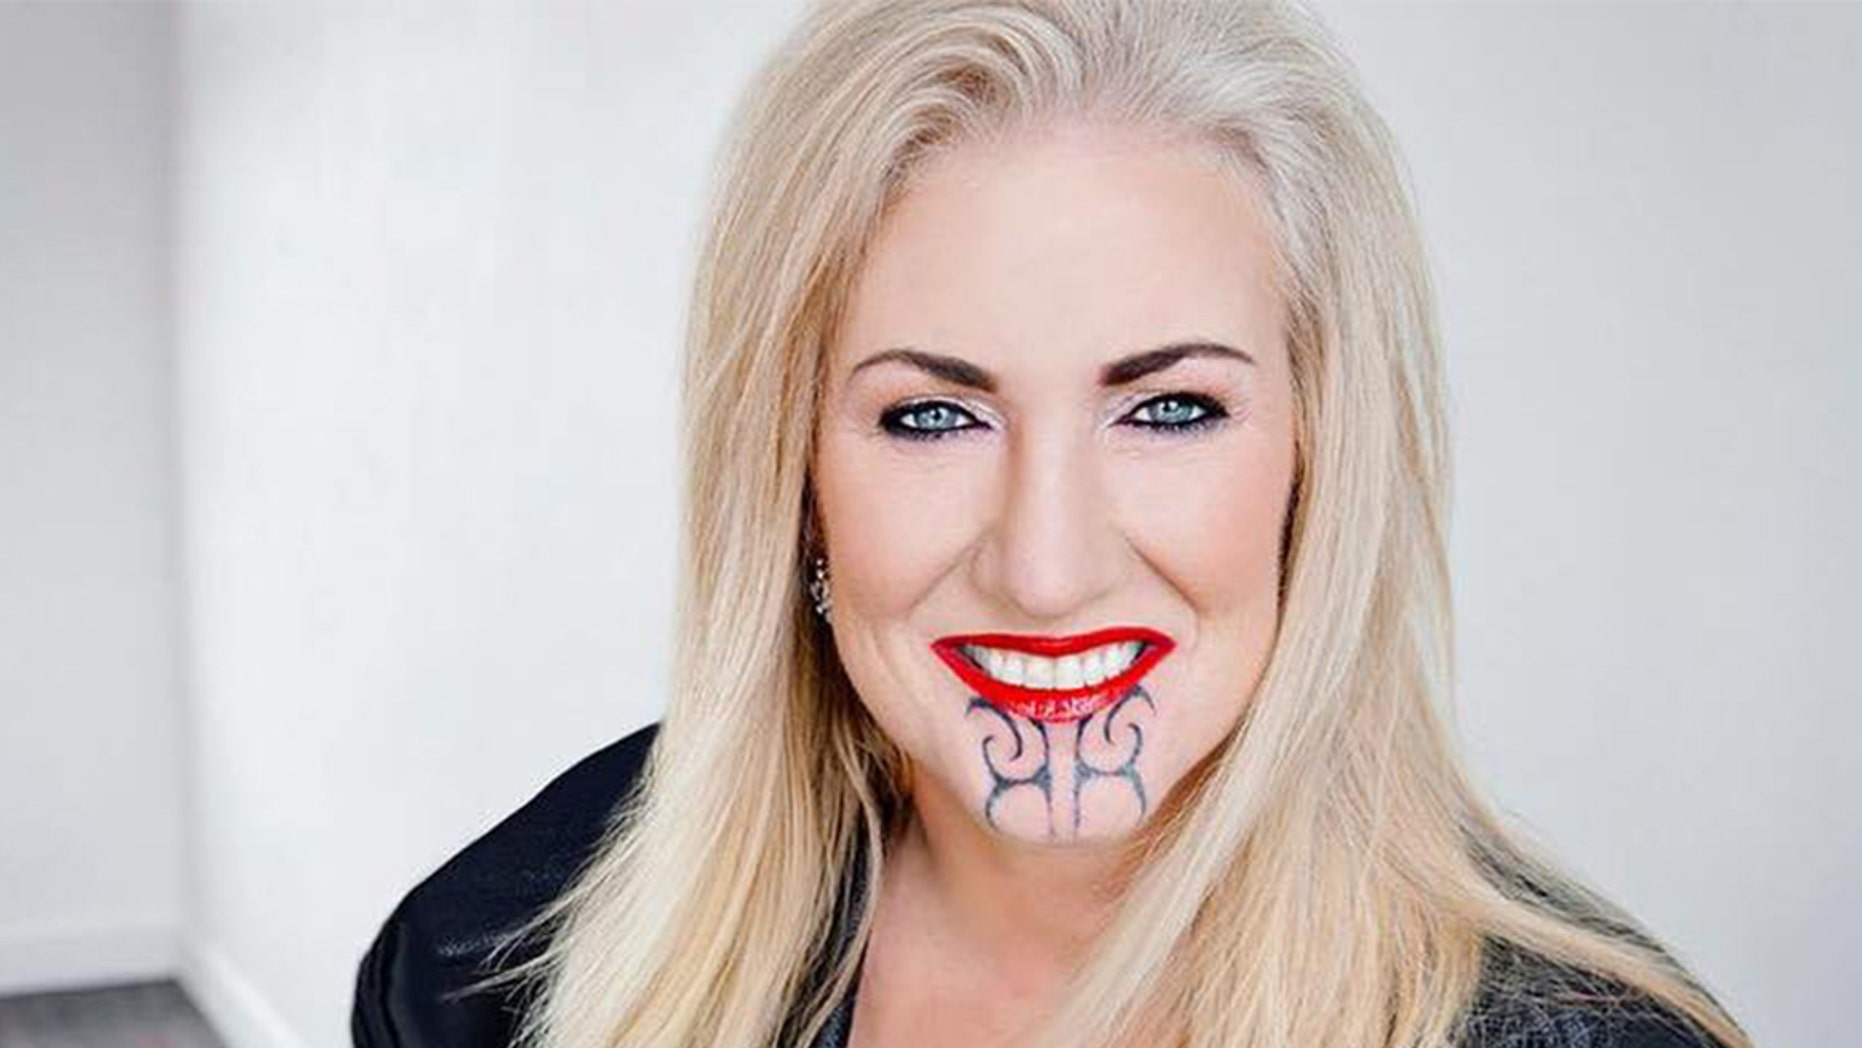 Sally Anderson's controversial chin tattoo is sparking debate in New Zealand.